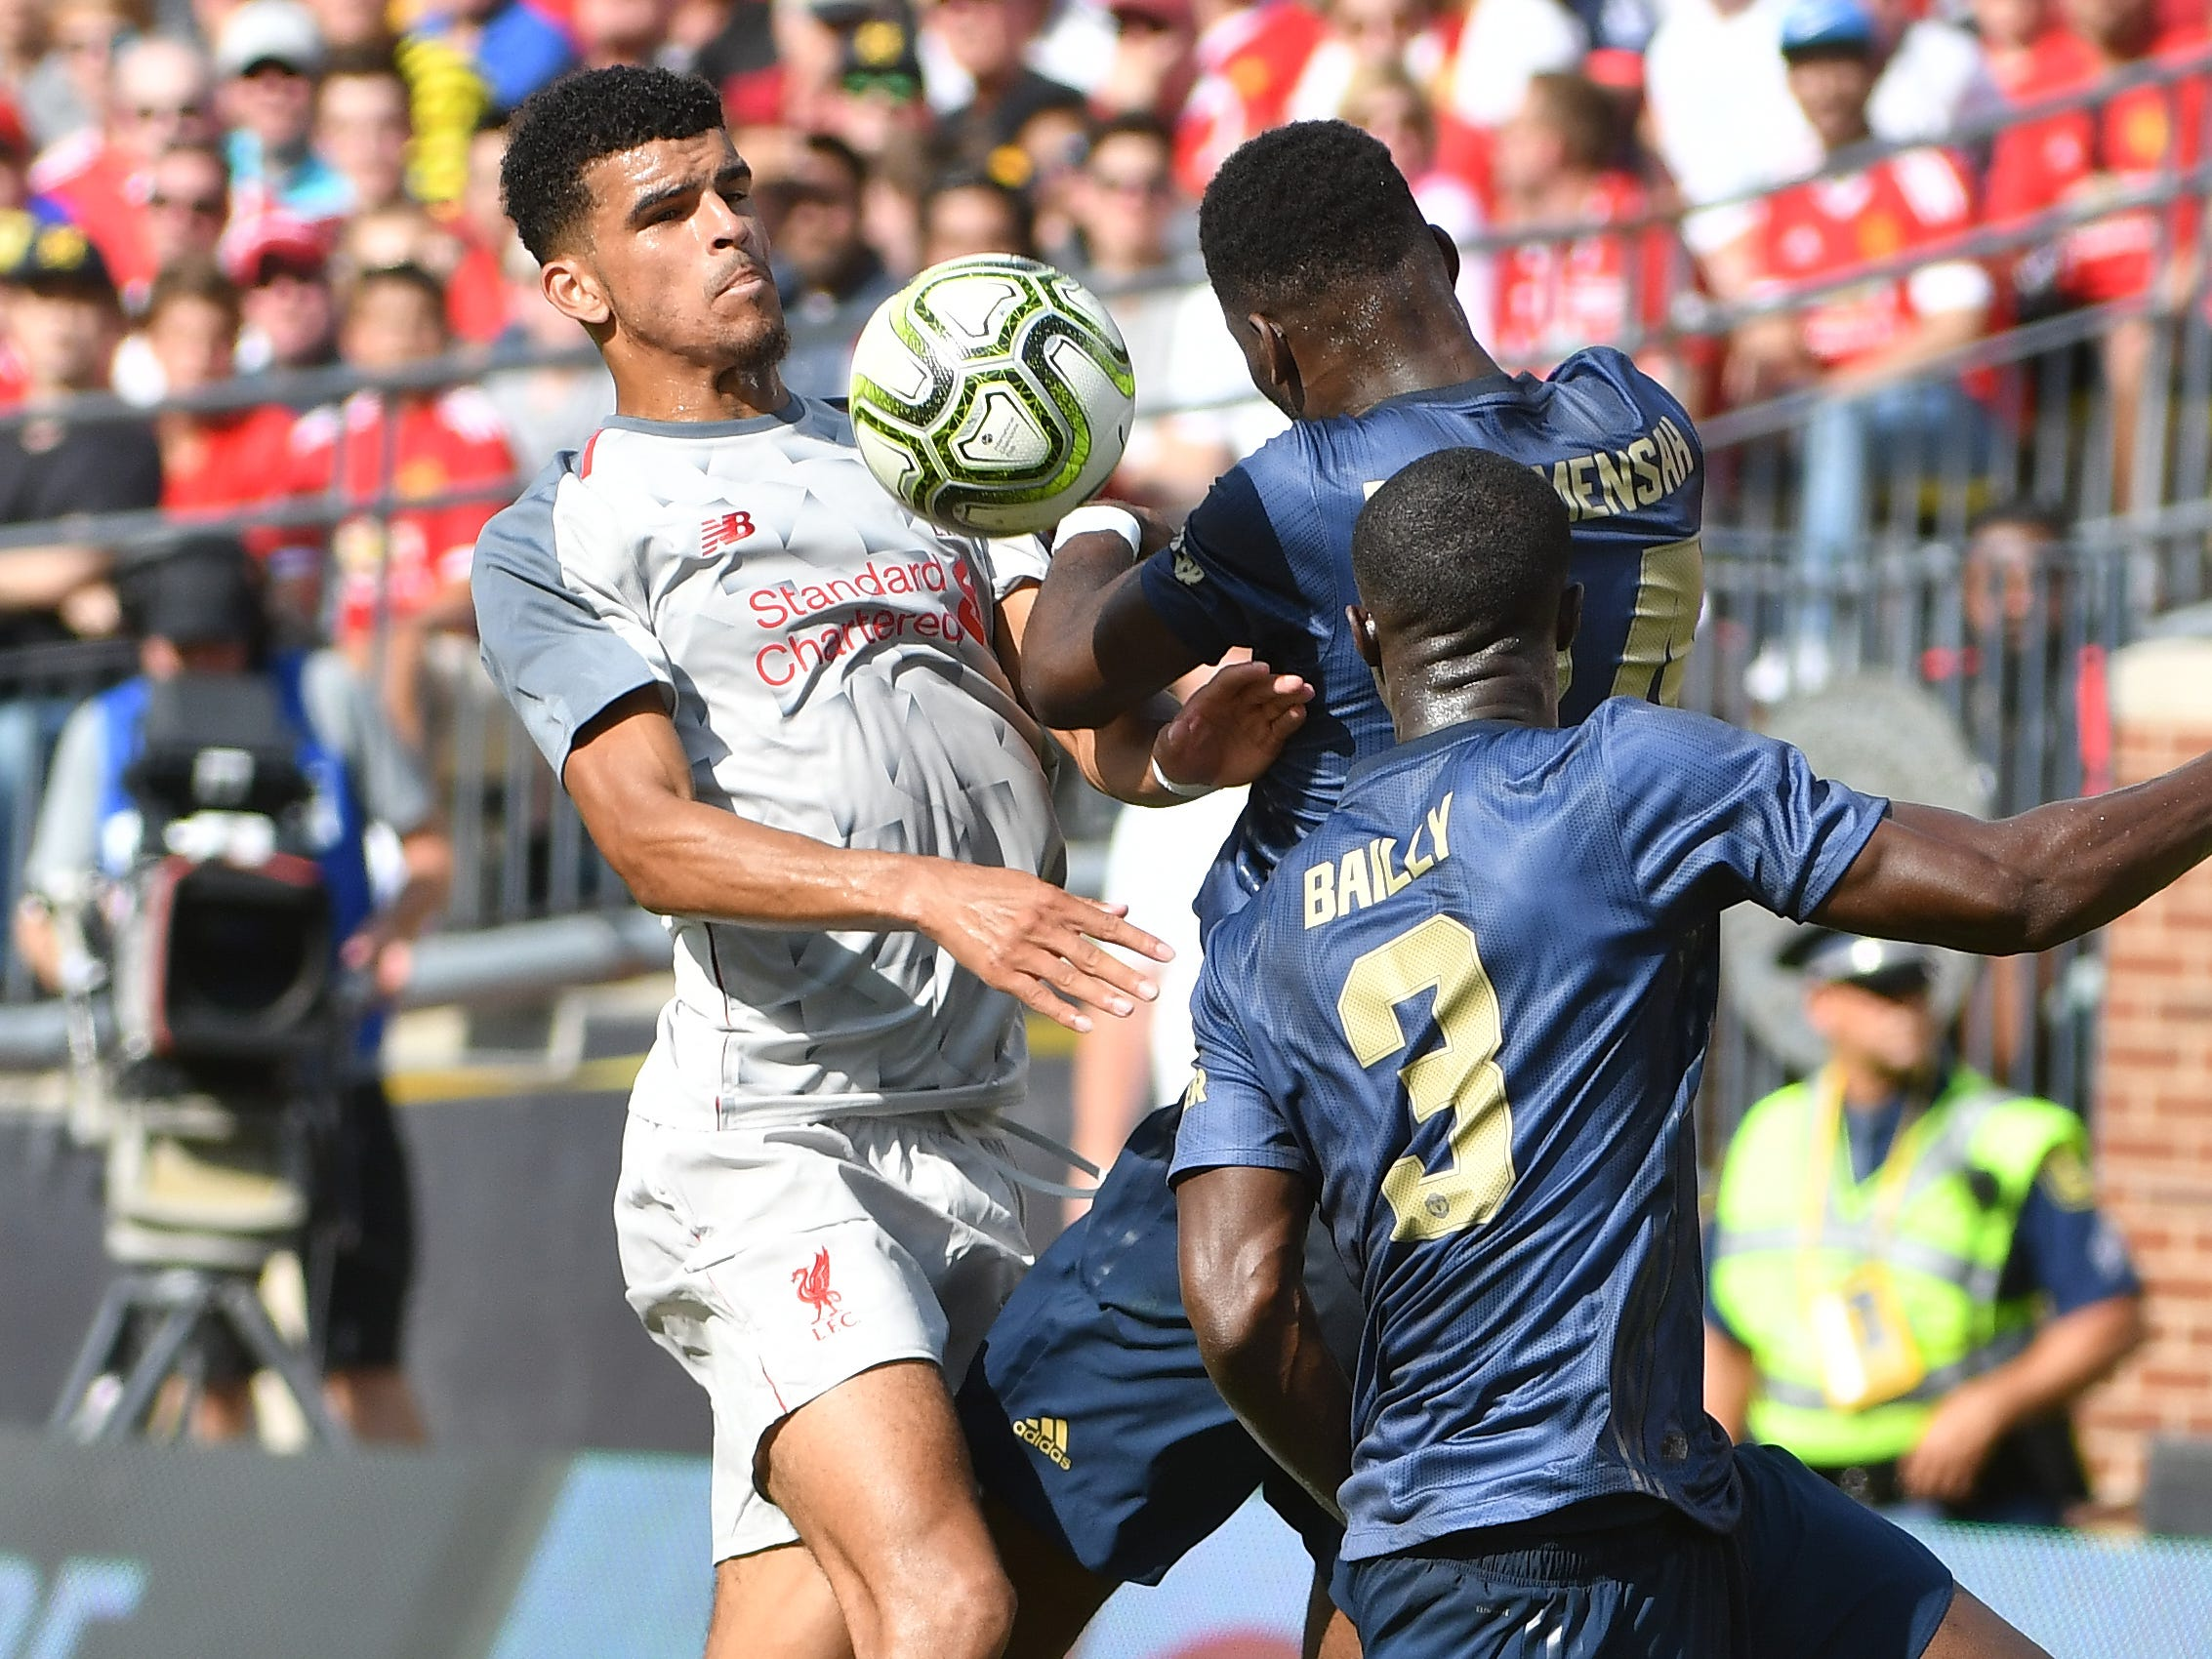 Liverpool's Dominic Solanke and Liverpool's Timothy Fosu-Mensah battle for a ball in the first half.